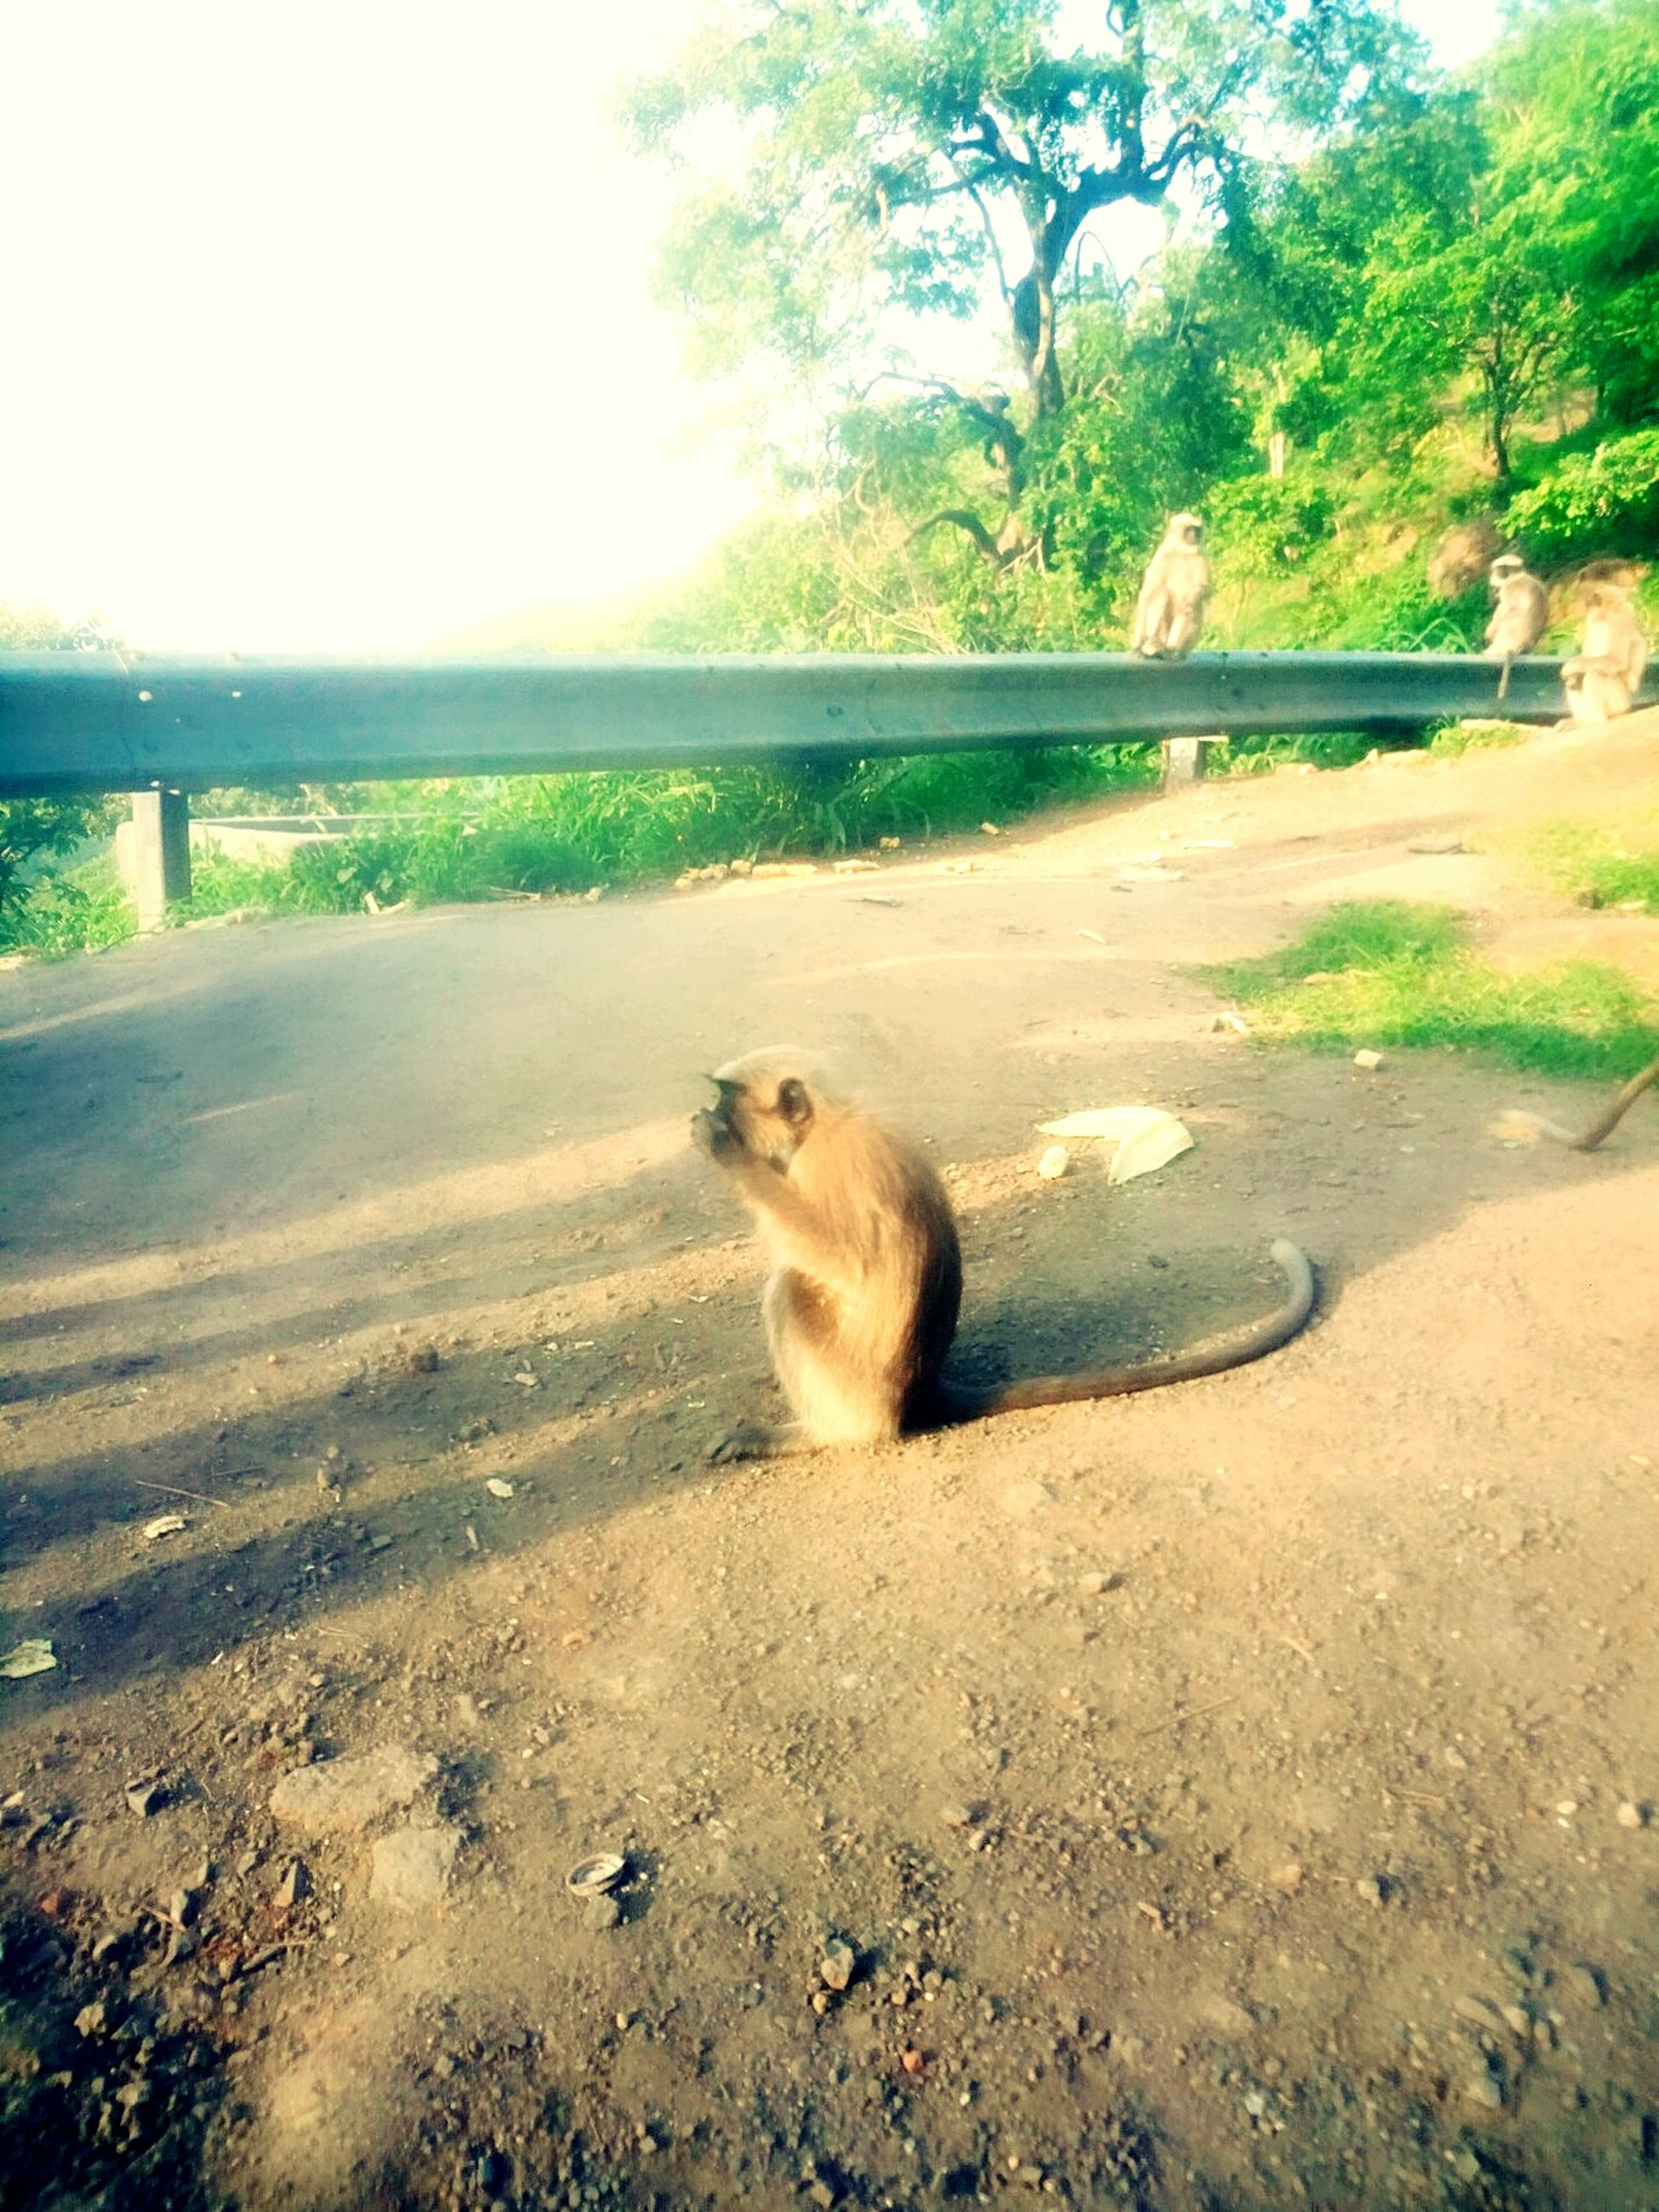 animal themes, one animal, mammal, day, nature, domestic animals, outdoors, sitting, pets, no people, water, tree, sky